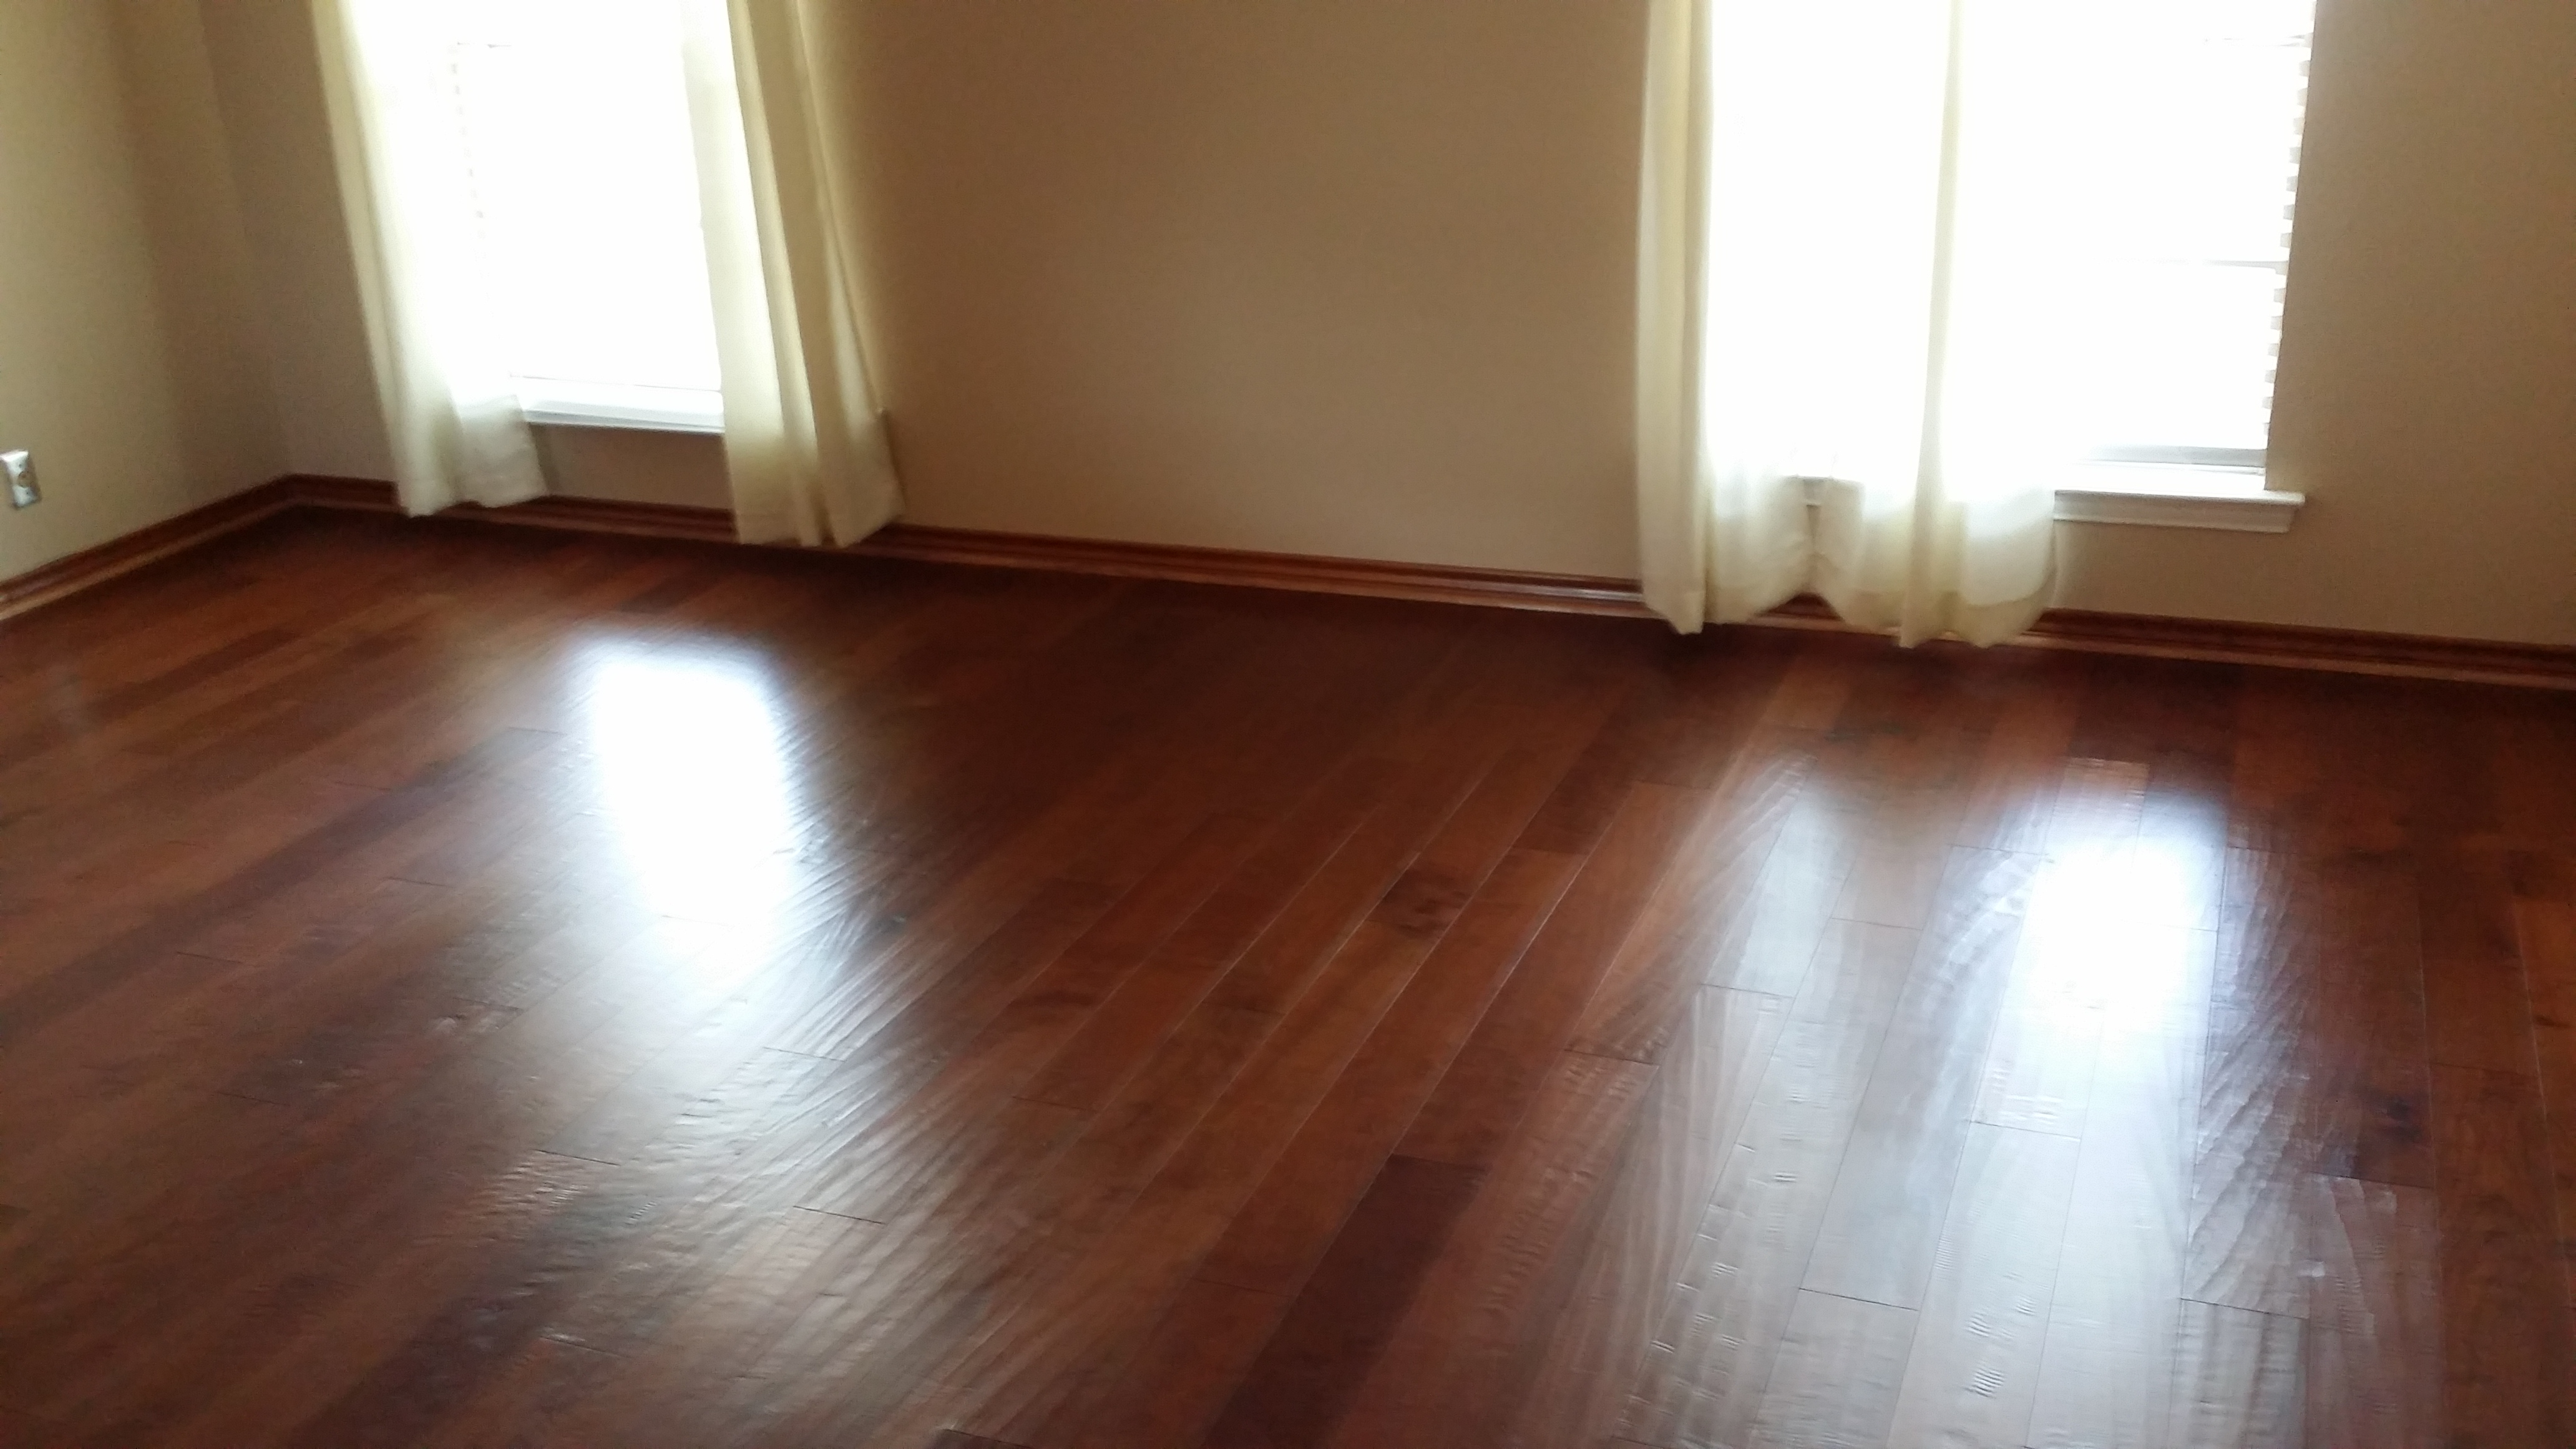 Hardwood Floors Cleaning Services in Plano Tx